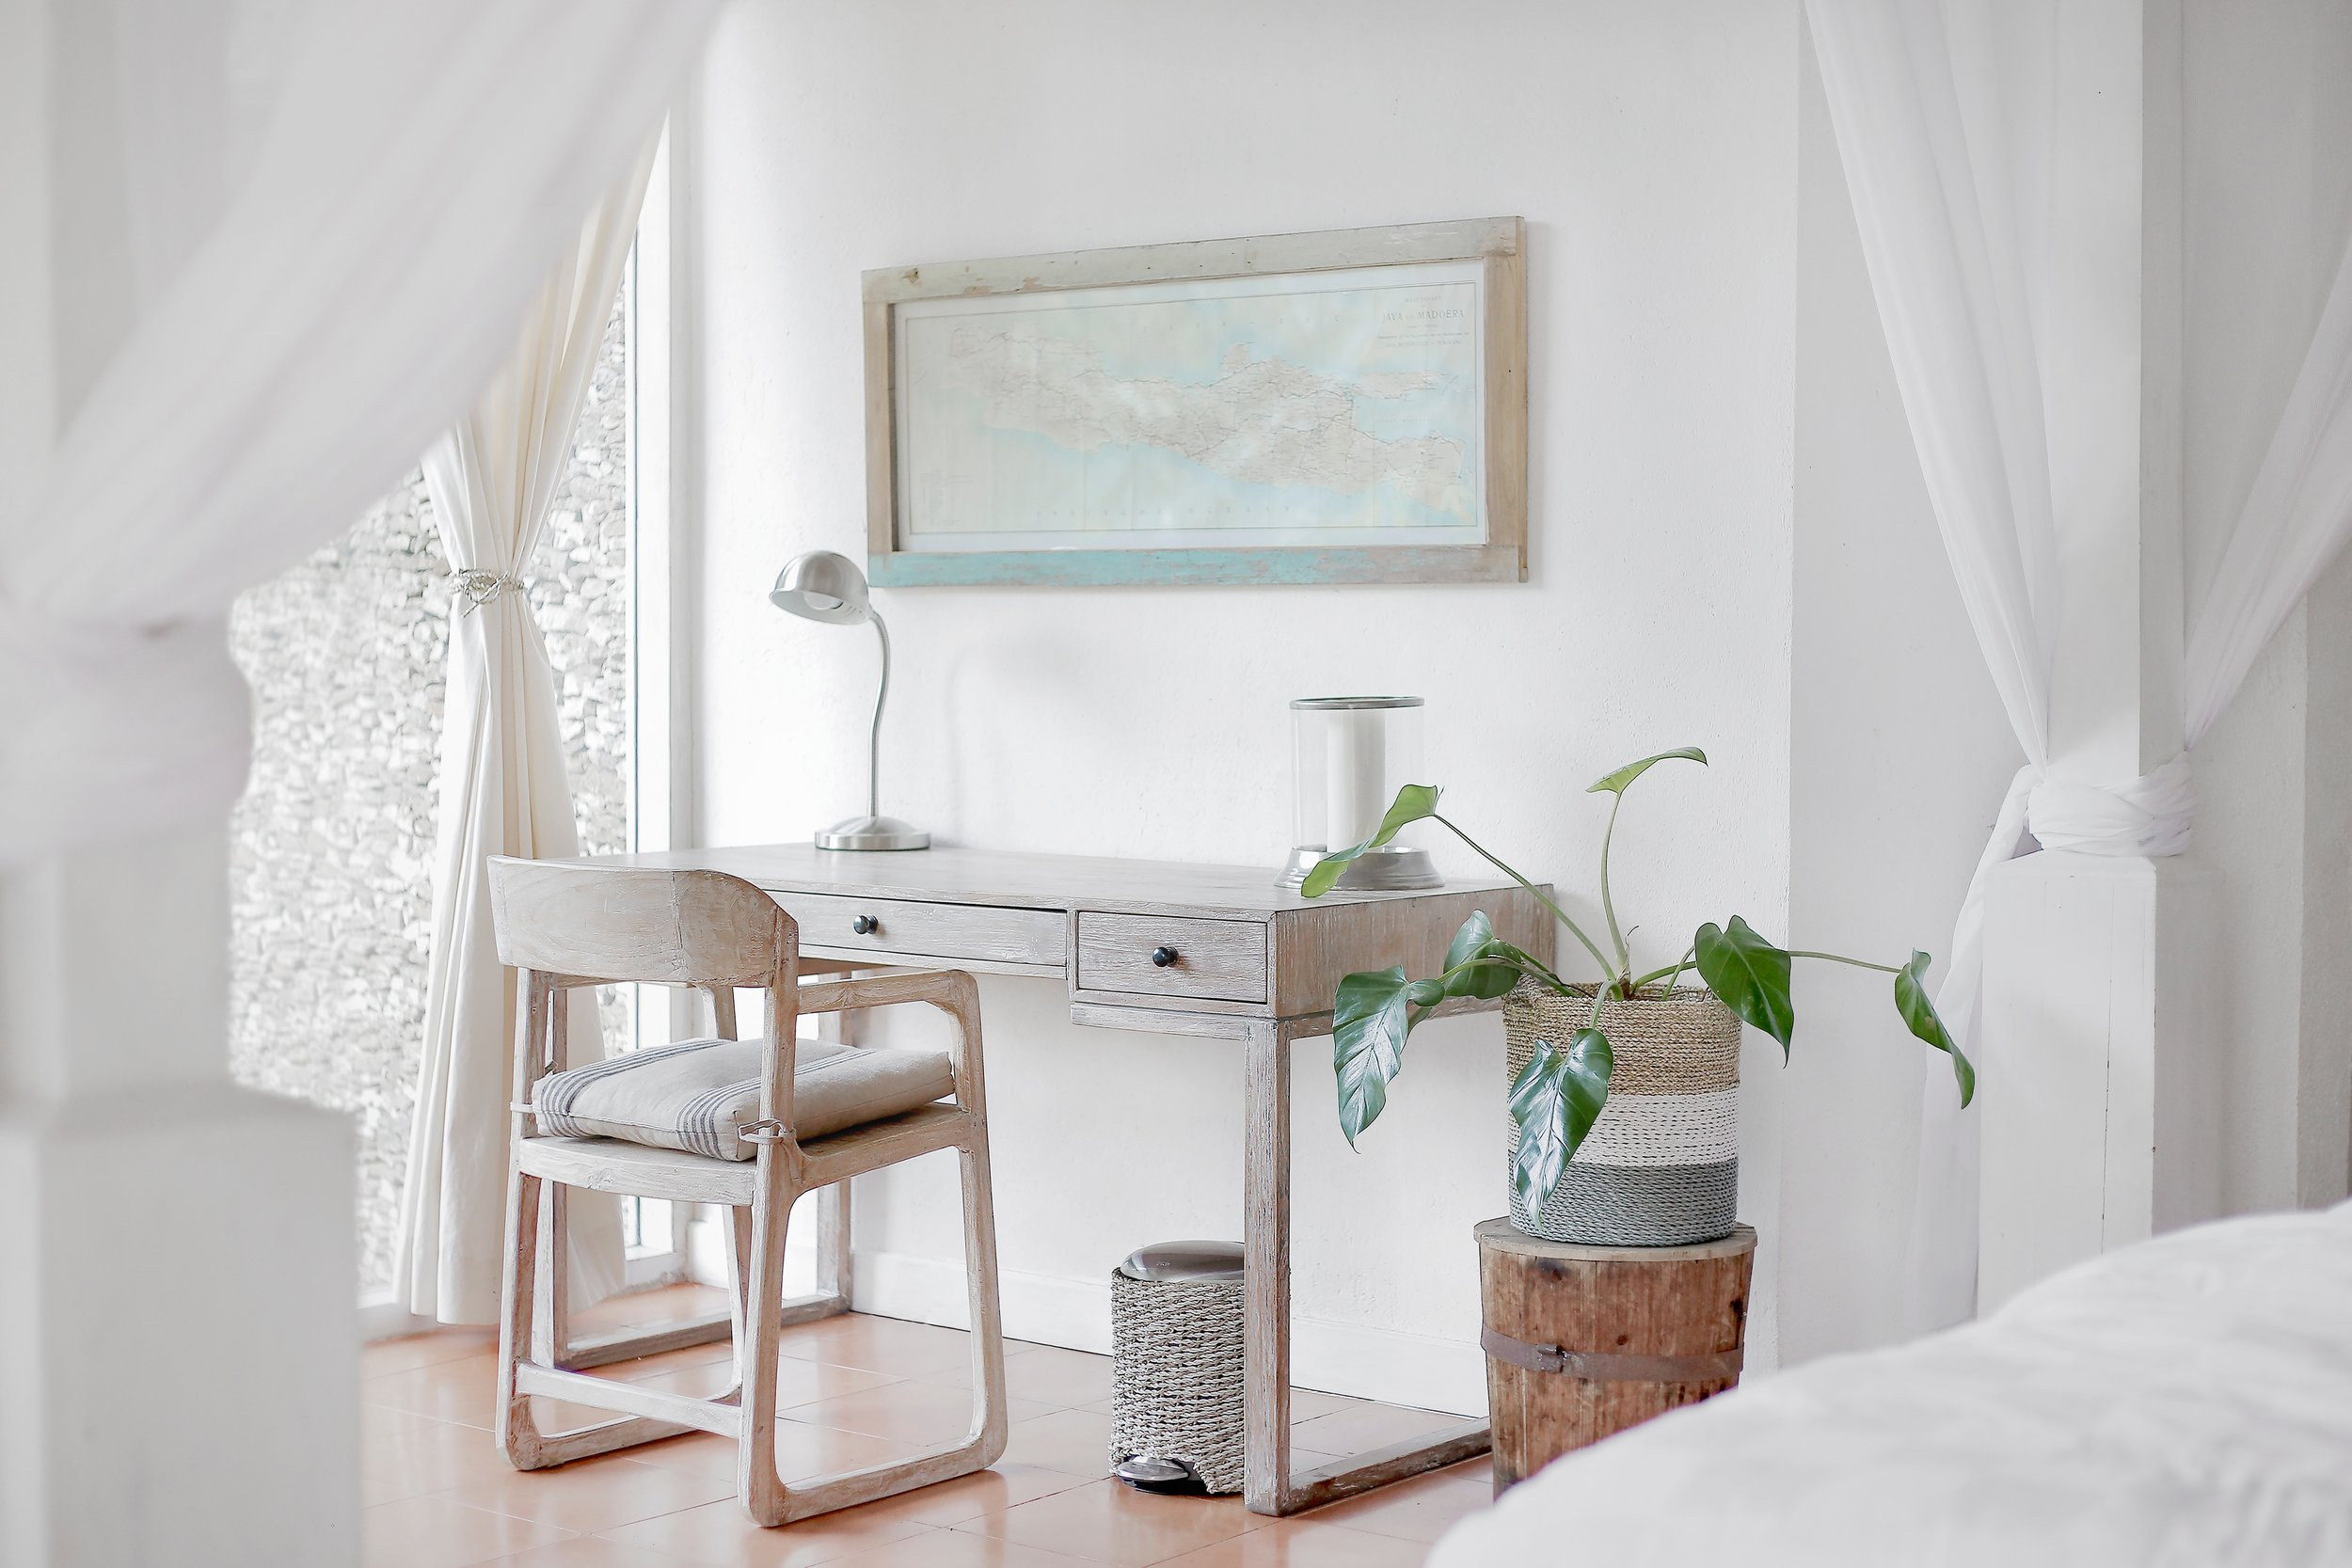 Fresh Paint - Remember, neutral colors are best such as whites, grays and calming tans. You can get a good quality paint for about $30 a gallon and it will do wonders to adding freshness and a sense of simple style to your home.